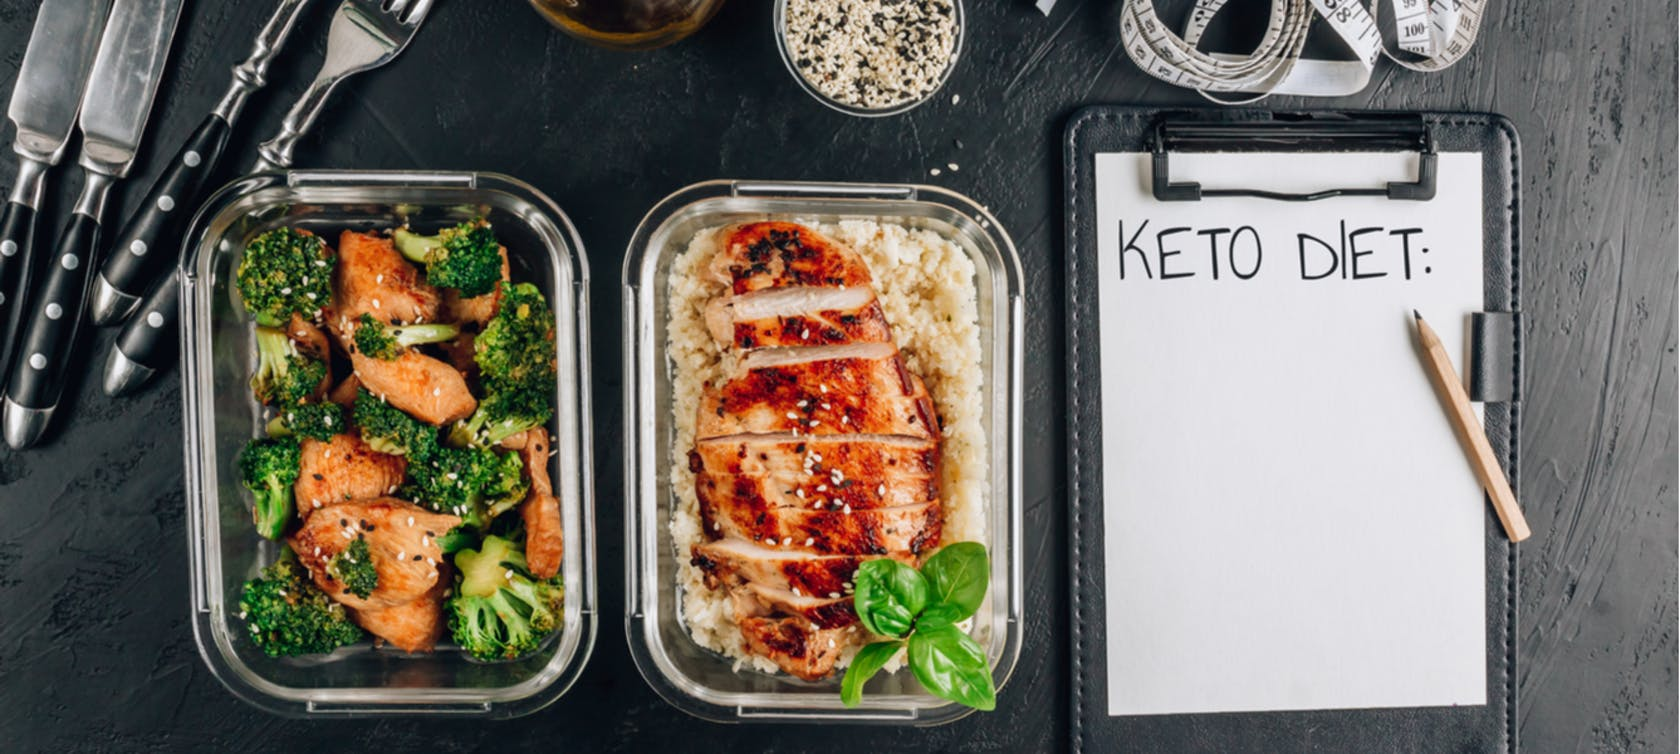 10 Keto Meal Planning Tips (+ Sample 7 Day Keto Meal Plan)